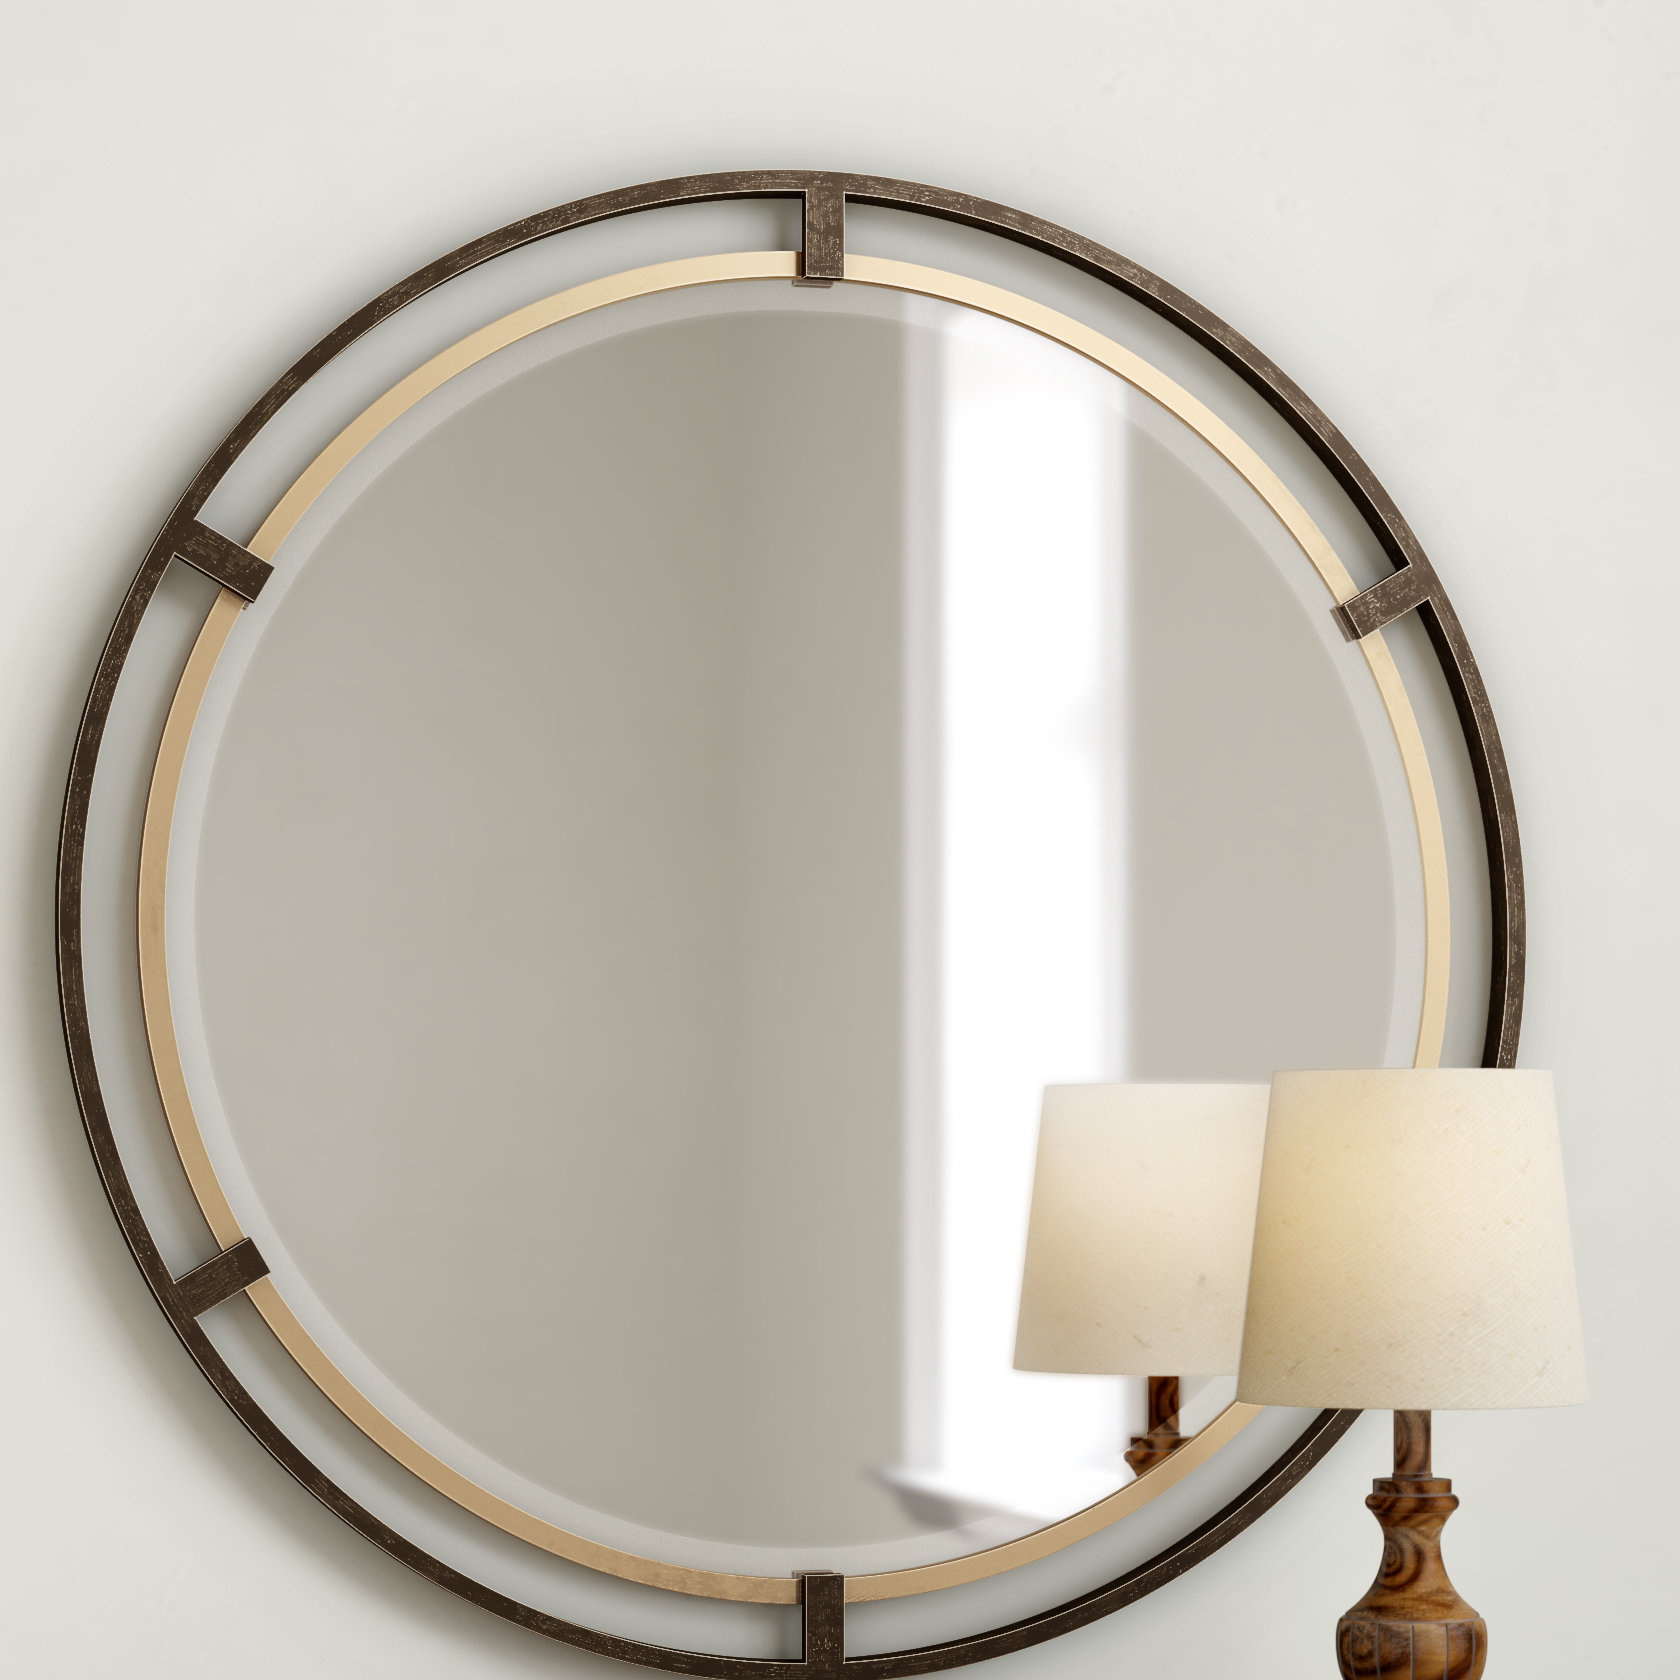 Widely Used Pia Carrizo Modern & Contemporary Accent Mirror Regarding Charters Towers Accent Mirrors (View 6 of 20)